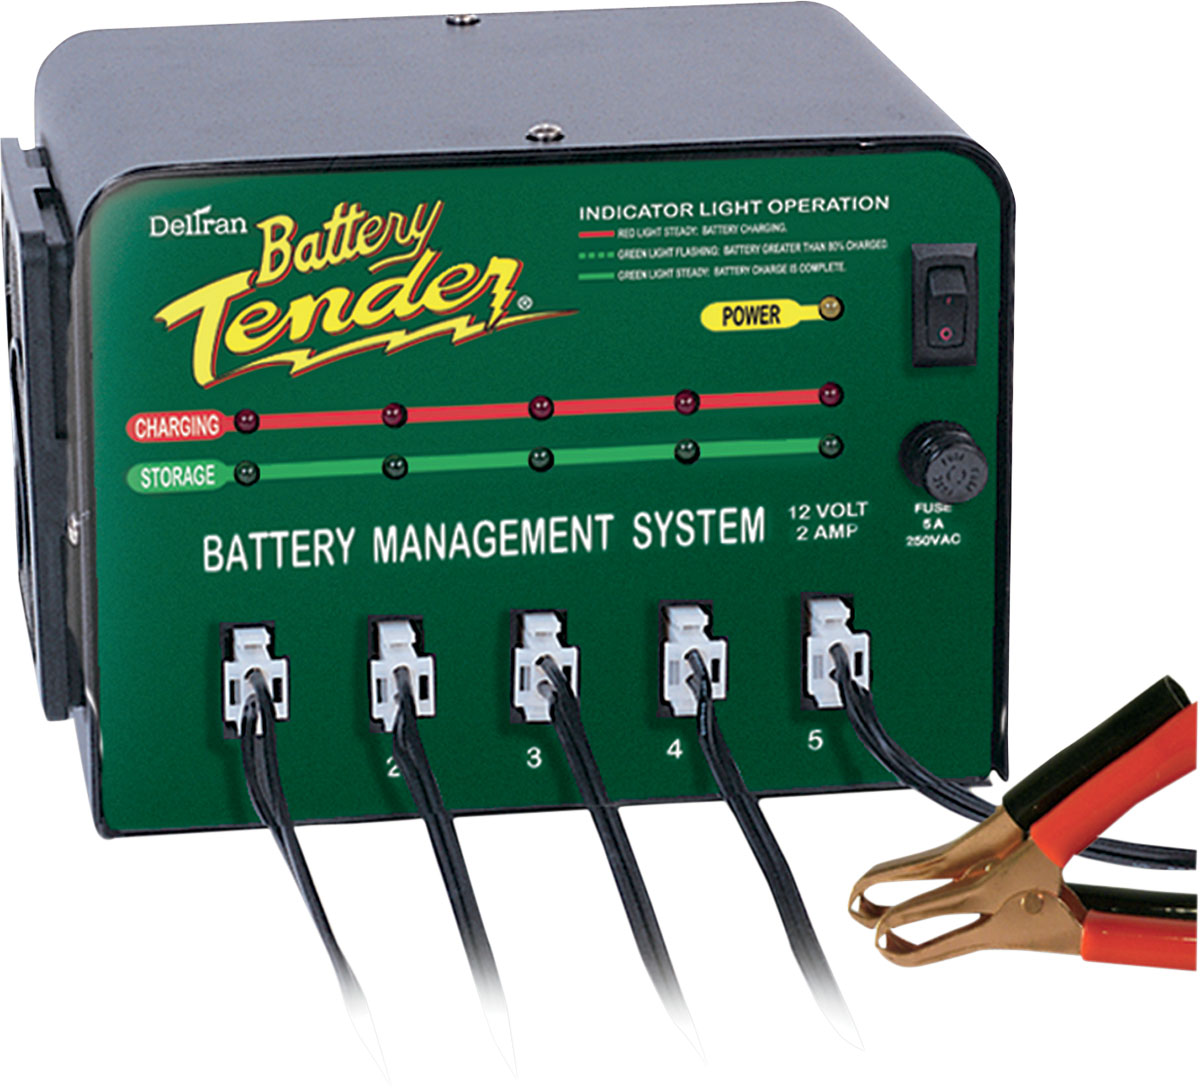 BATTERY TENDER 5 BANK BATTERY TENDER (#0210133)